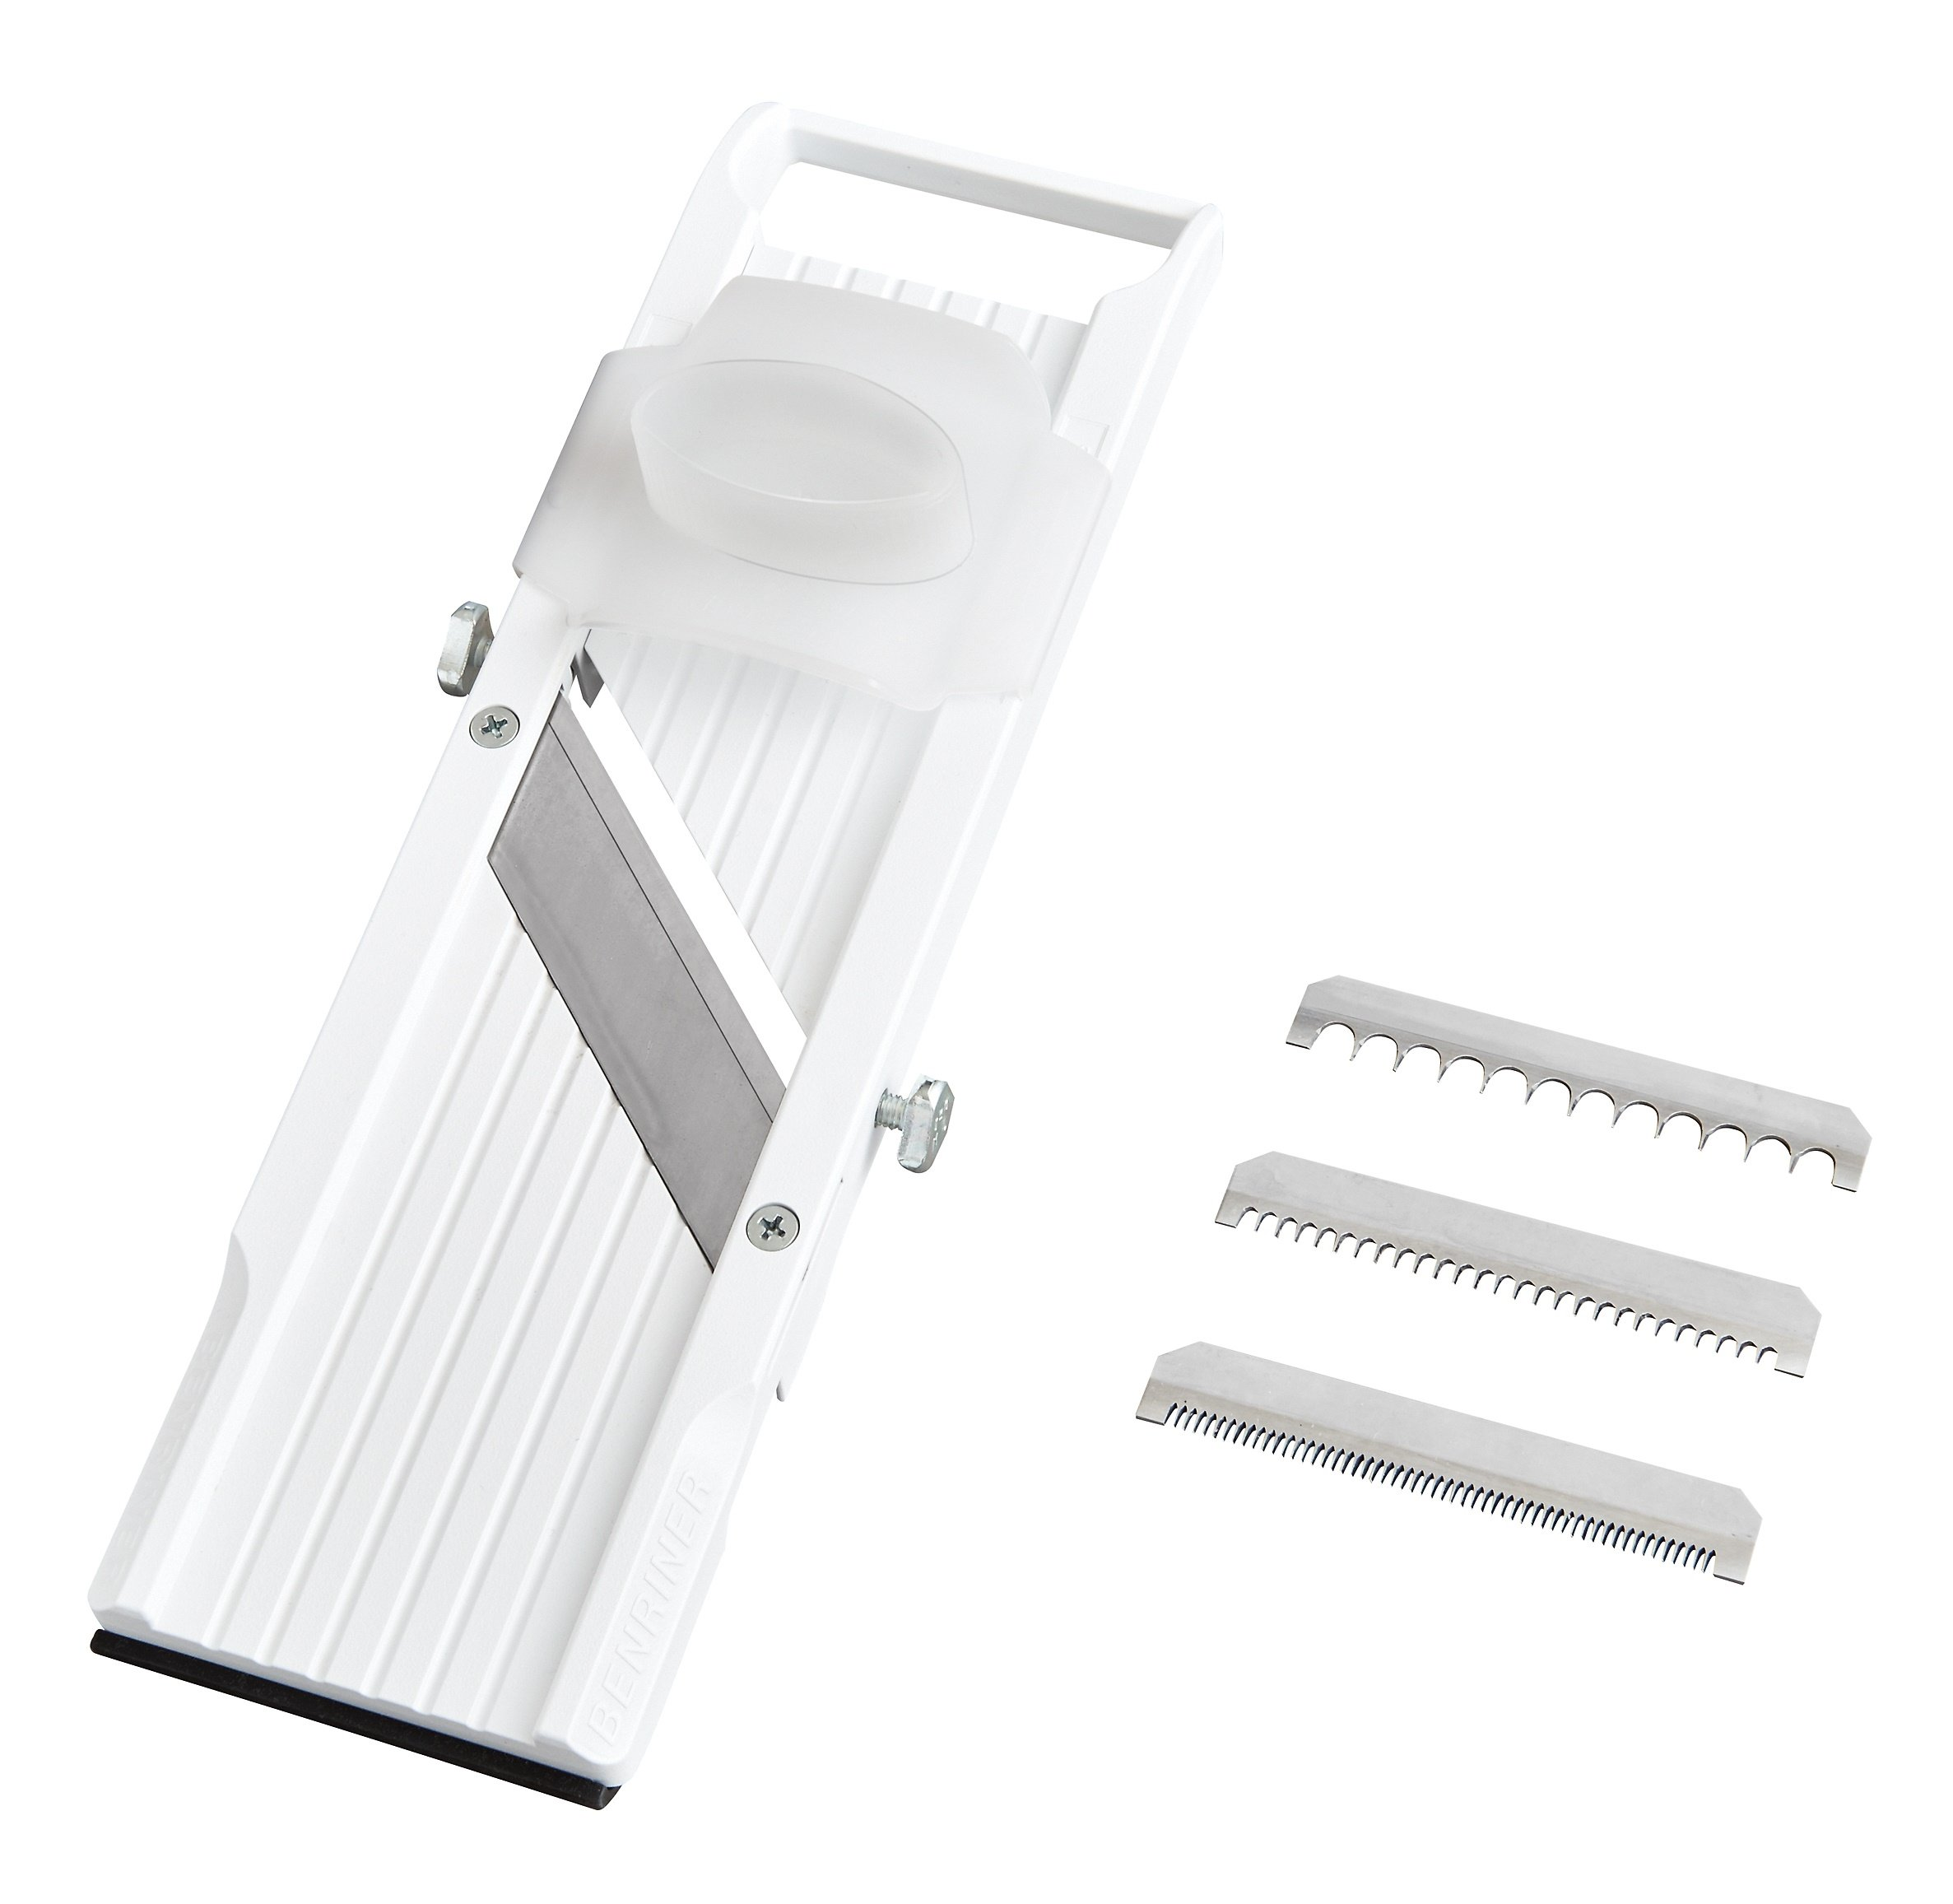 Benriner Mandoline Slicer, with 4 Japanese Stainless Steel Blades, BPA Free, 12.75 x 3.625-Inches, New Model